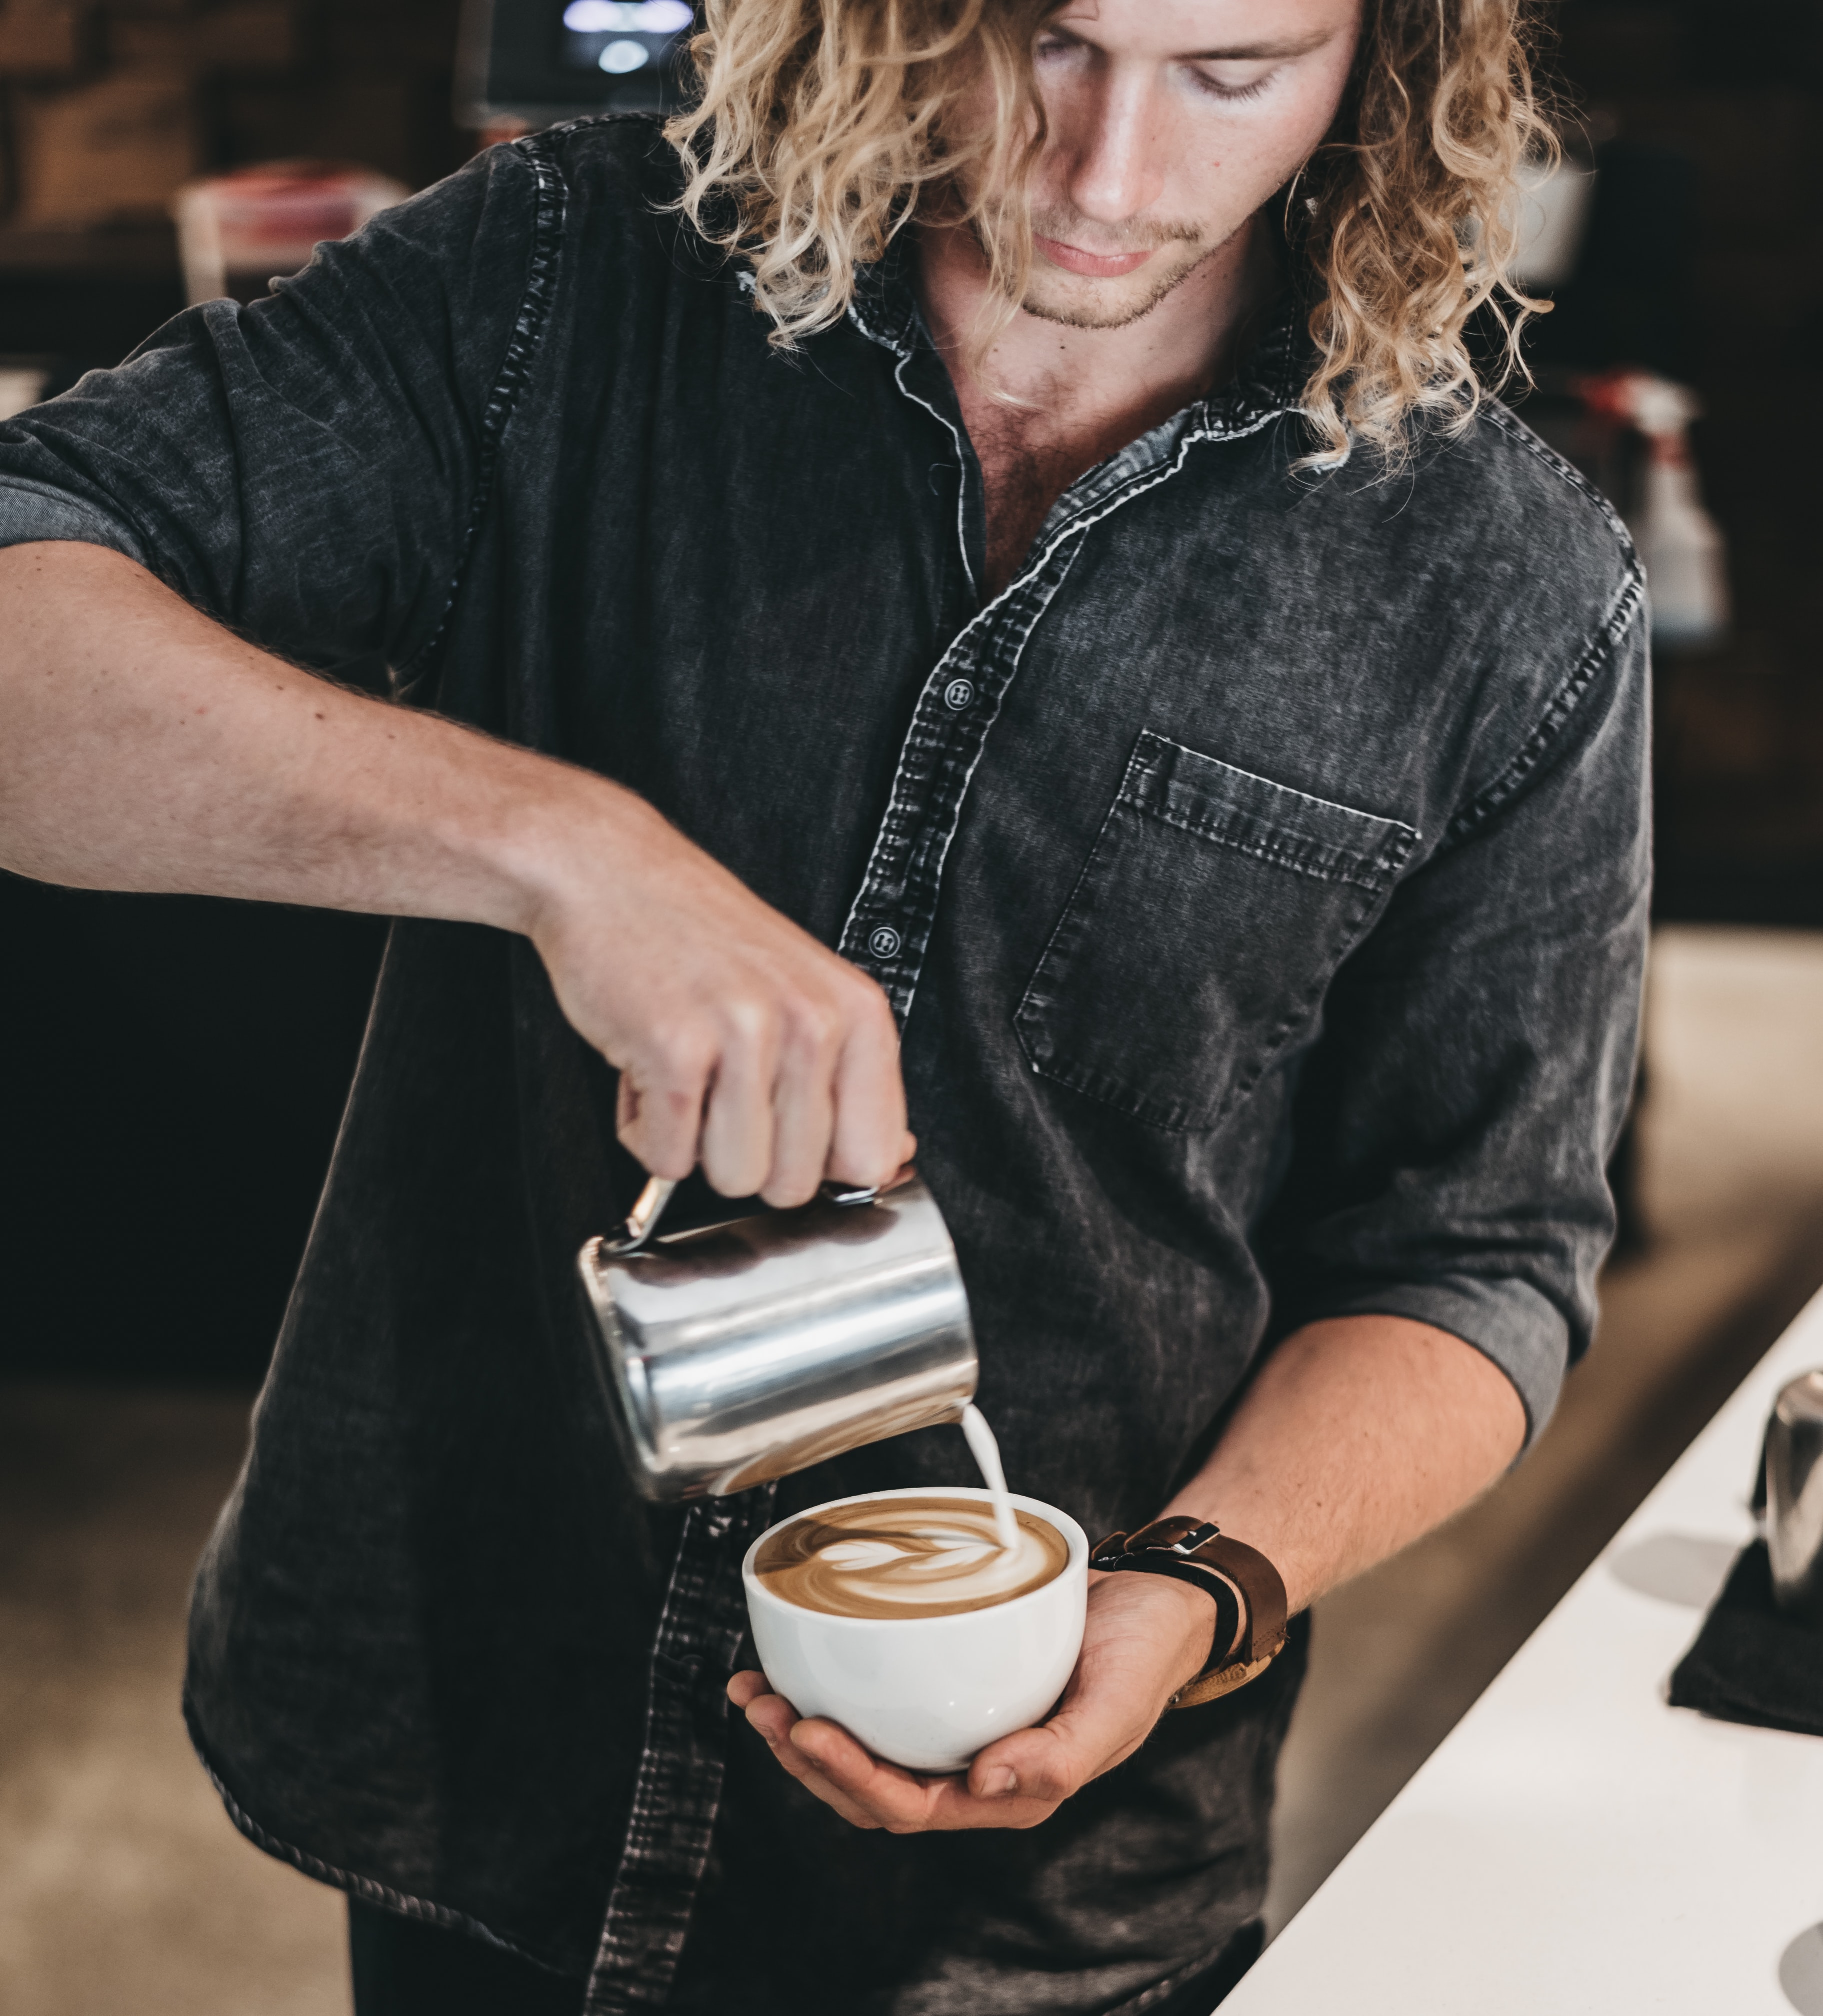 man wearing black denim jacket pouring white liquid on cup with latte art